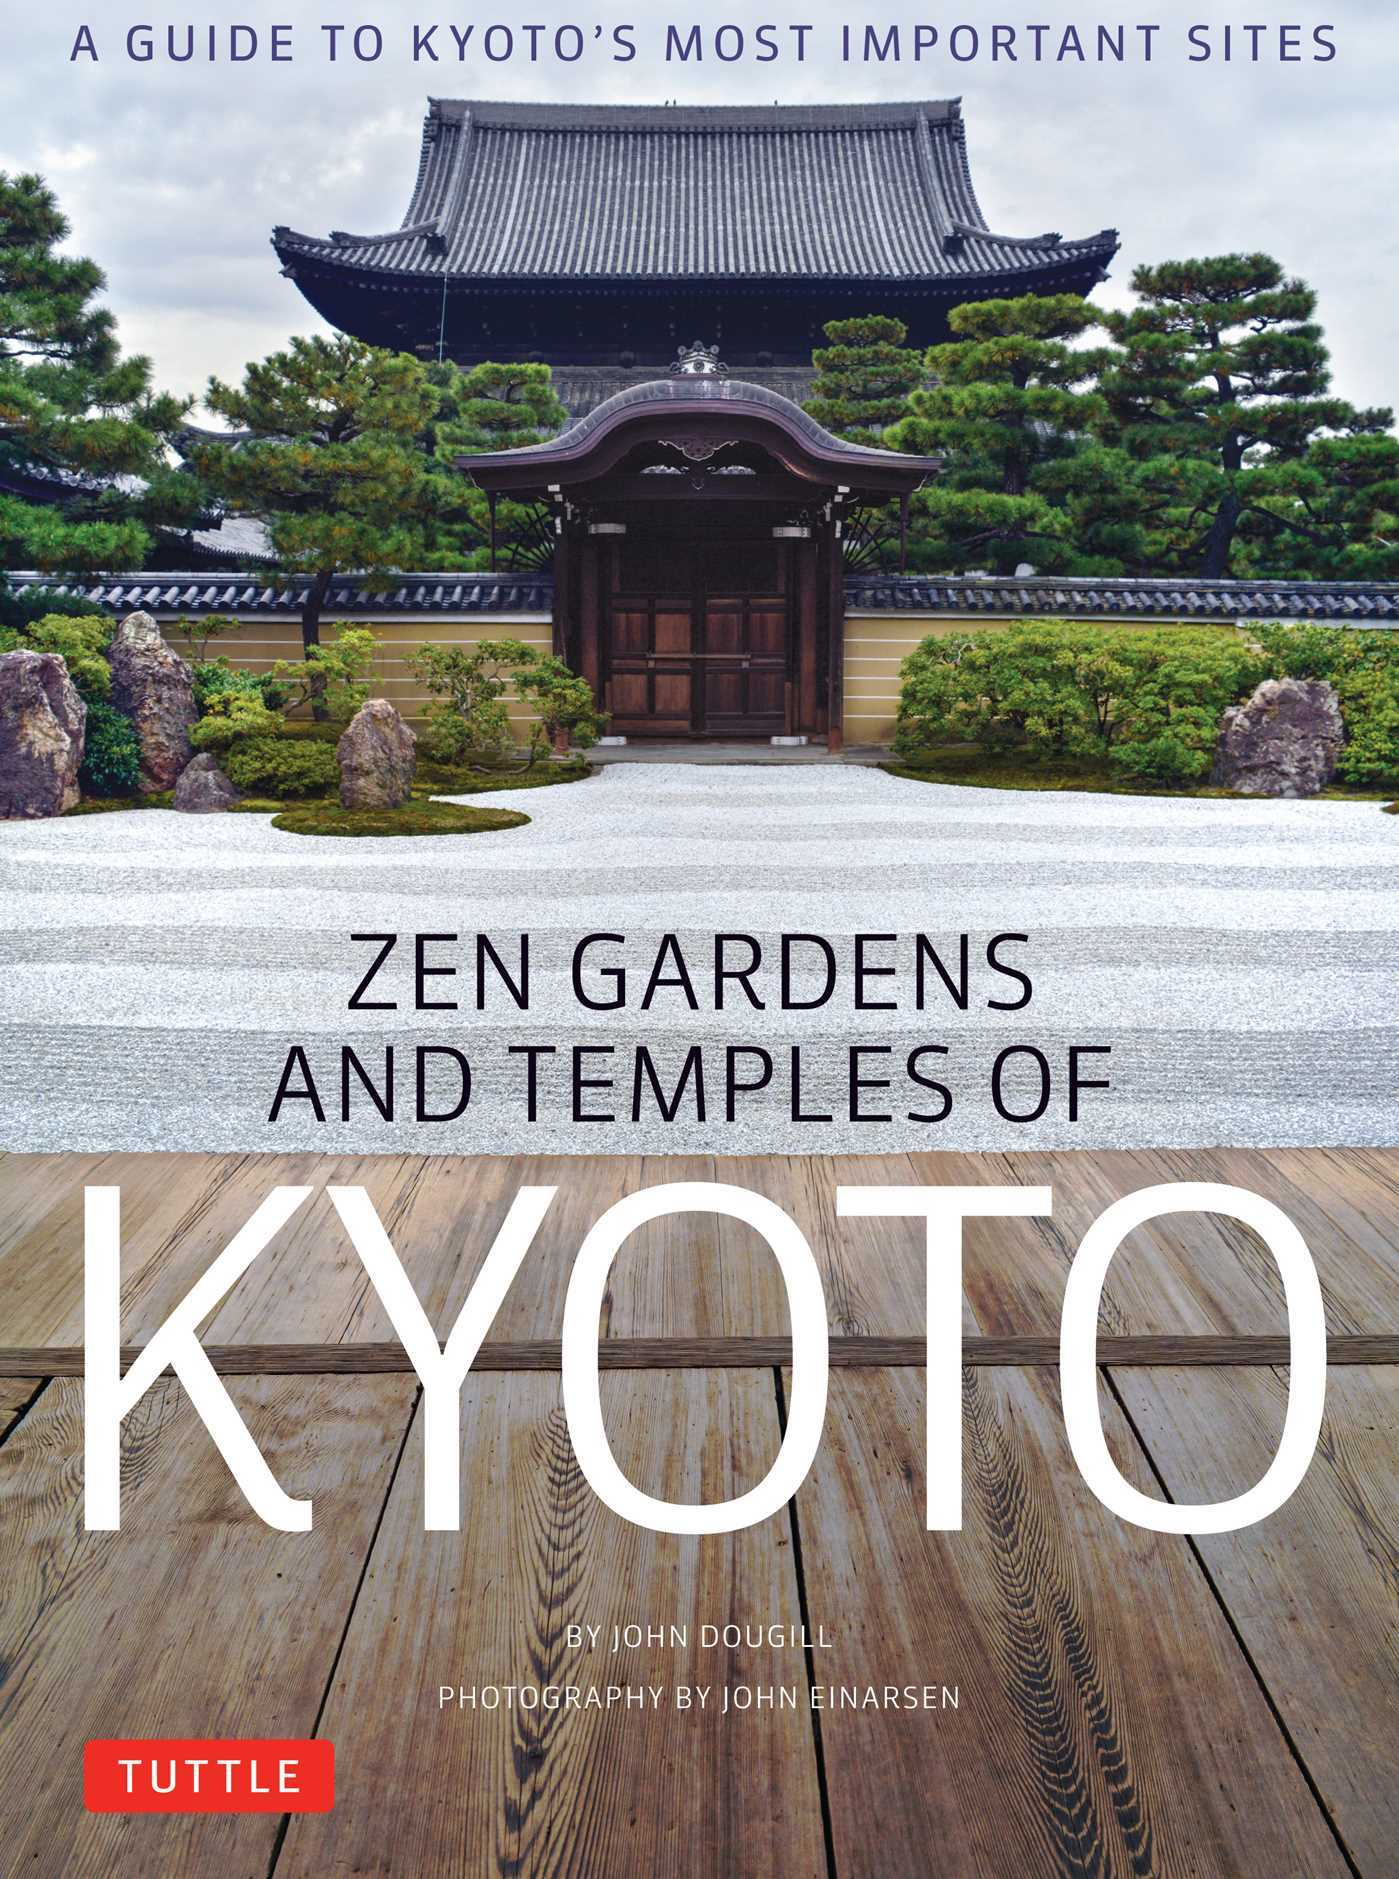 Zen Gardens and Temples of Kyoto A Guide to Kyoto's Most Important Sites